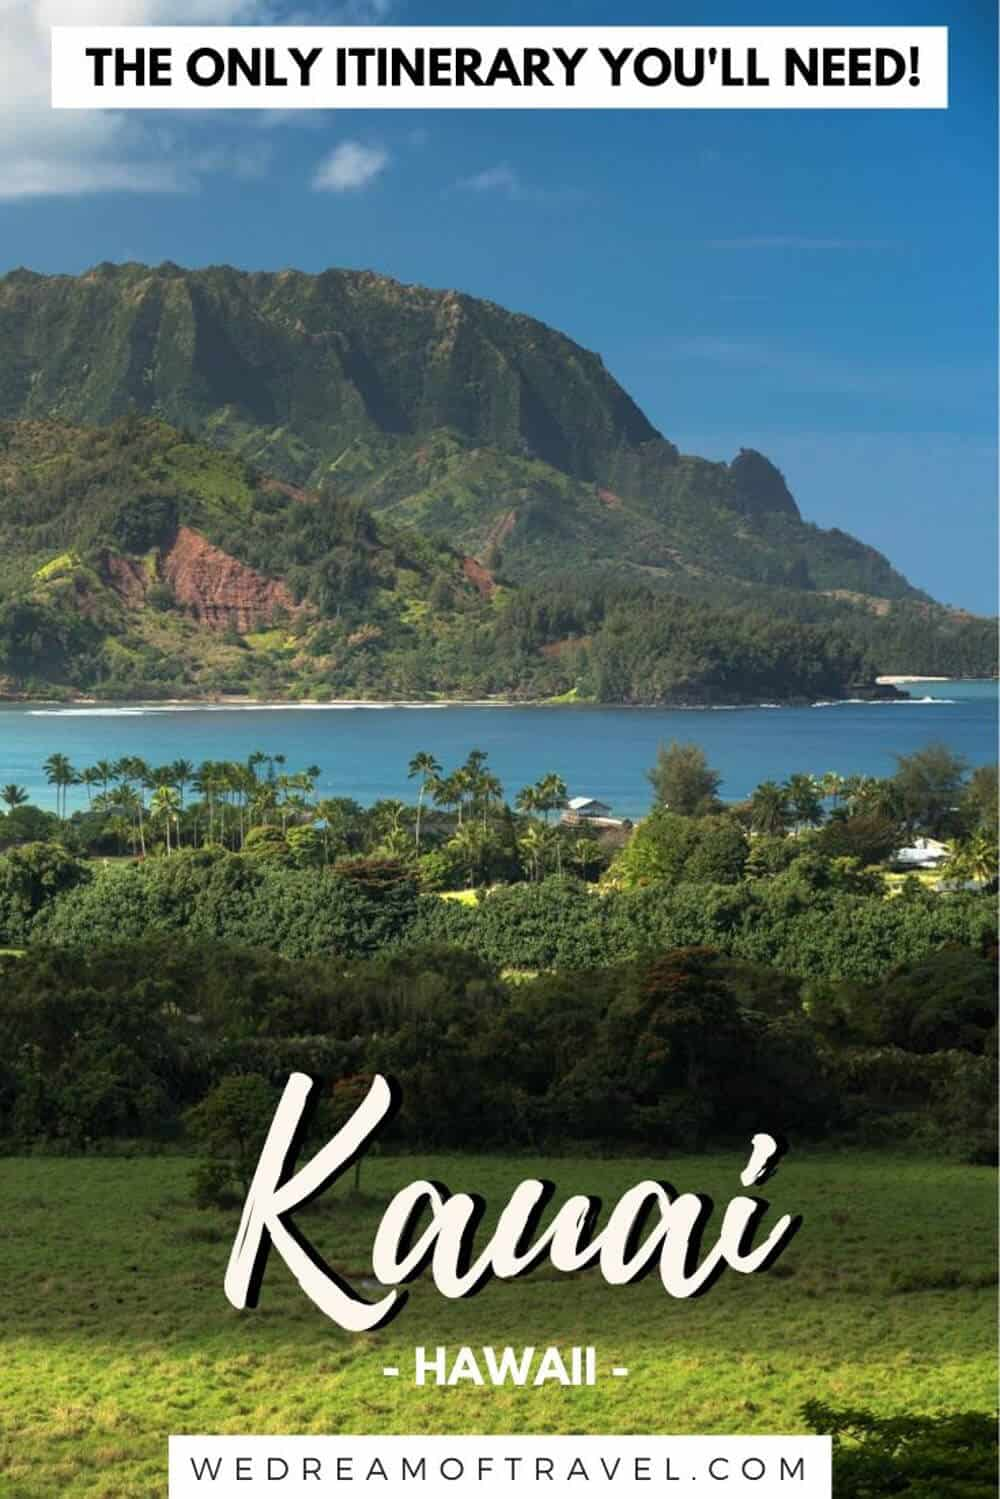 Looking for the best things to do in Kauai to build your ultimate Kauai itinerary?  Look no further.  This 7 day itinerary for Kauai has everything you need to plan your perfect Hawaiian vacation, including where to stay, what to see, things to do and an interactive map of all the best places in Kauai. #kauai #hawaii #kauaihawaii